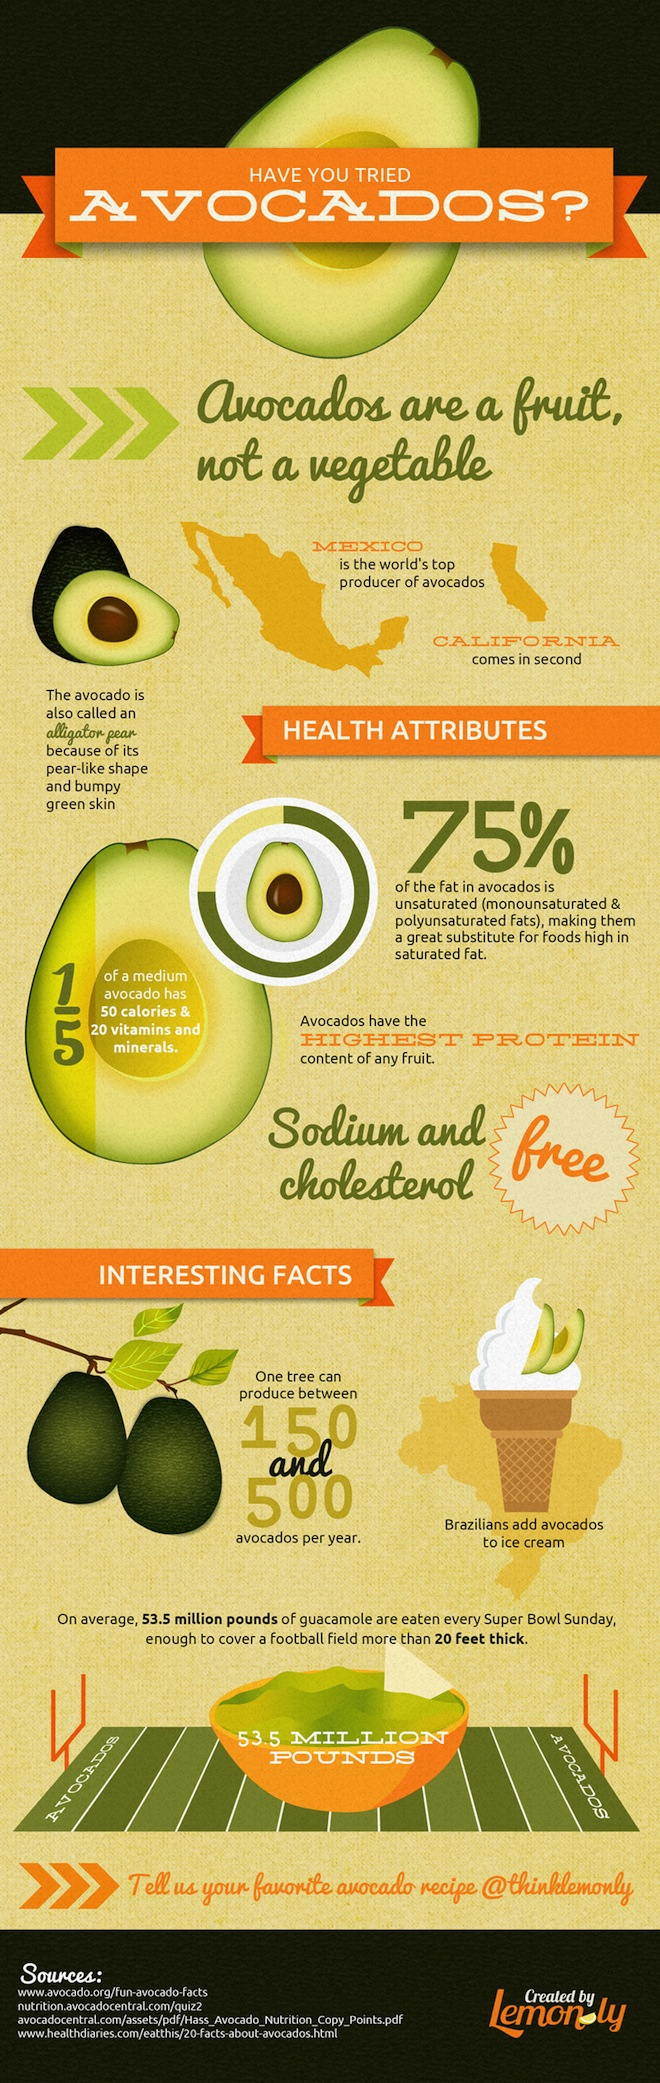 9 Facts About Avocados Infographic